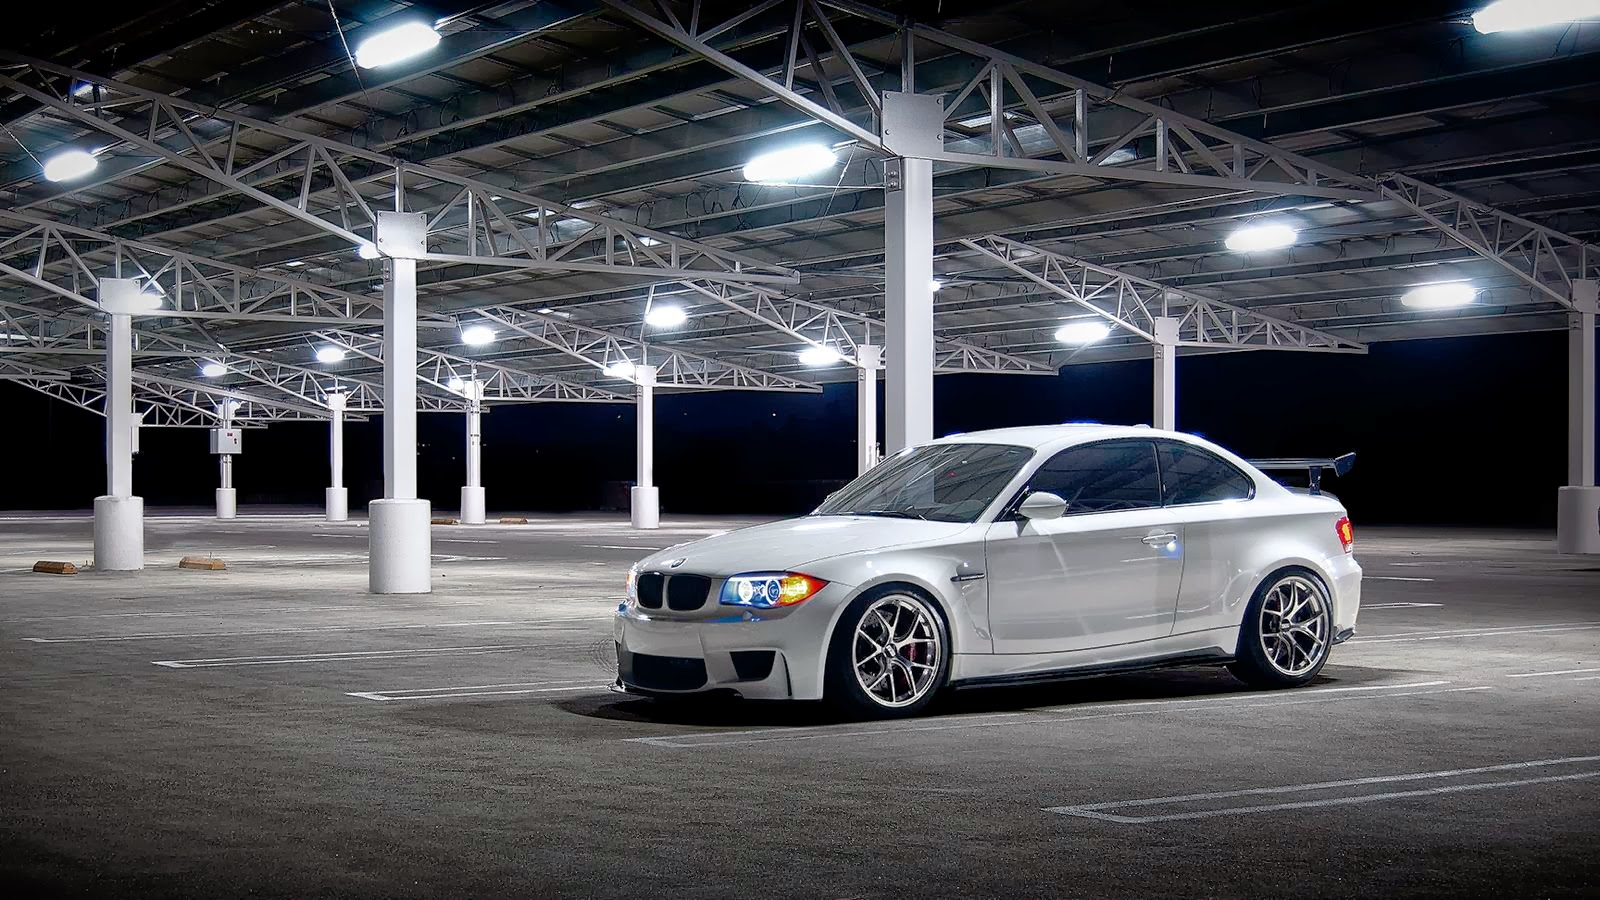 SPORTS CARS: BMW 1M Wallpaper HD